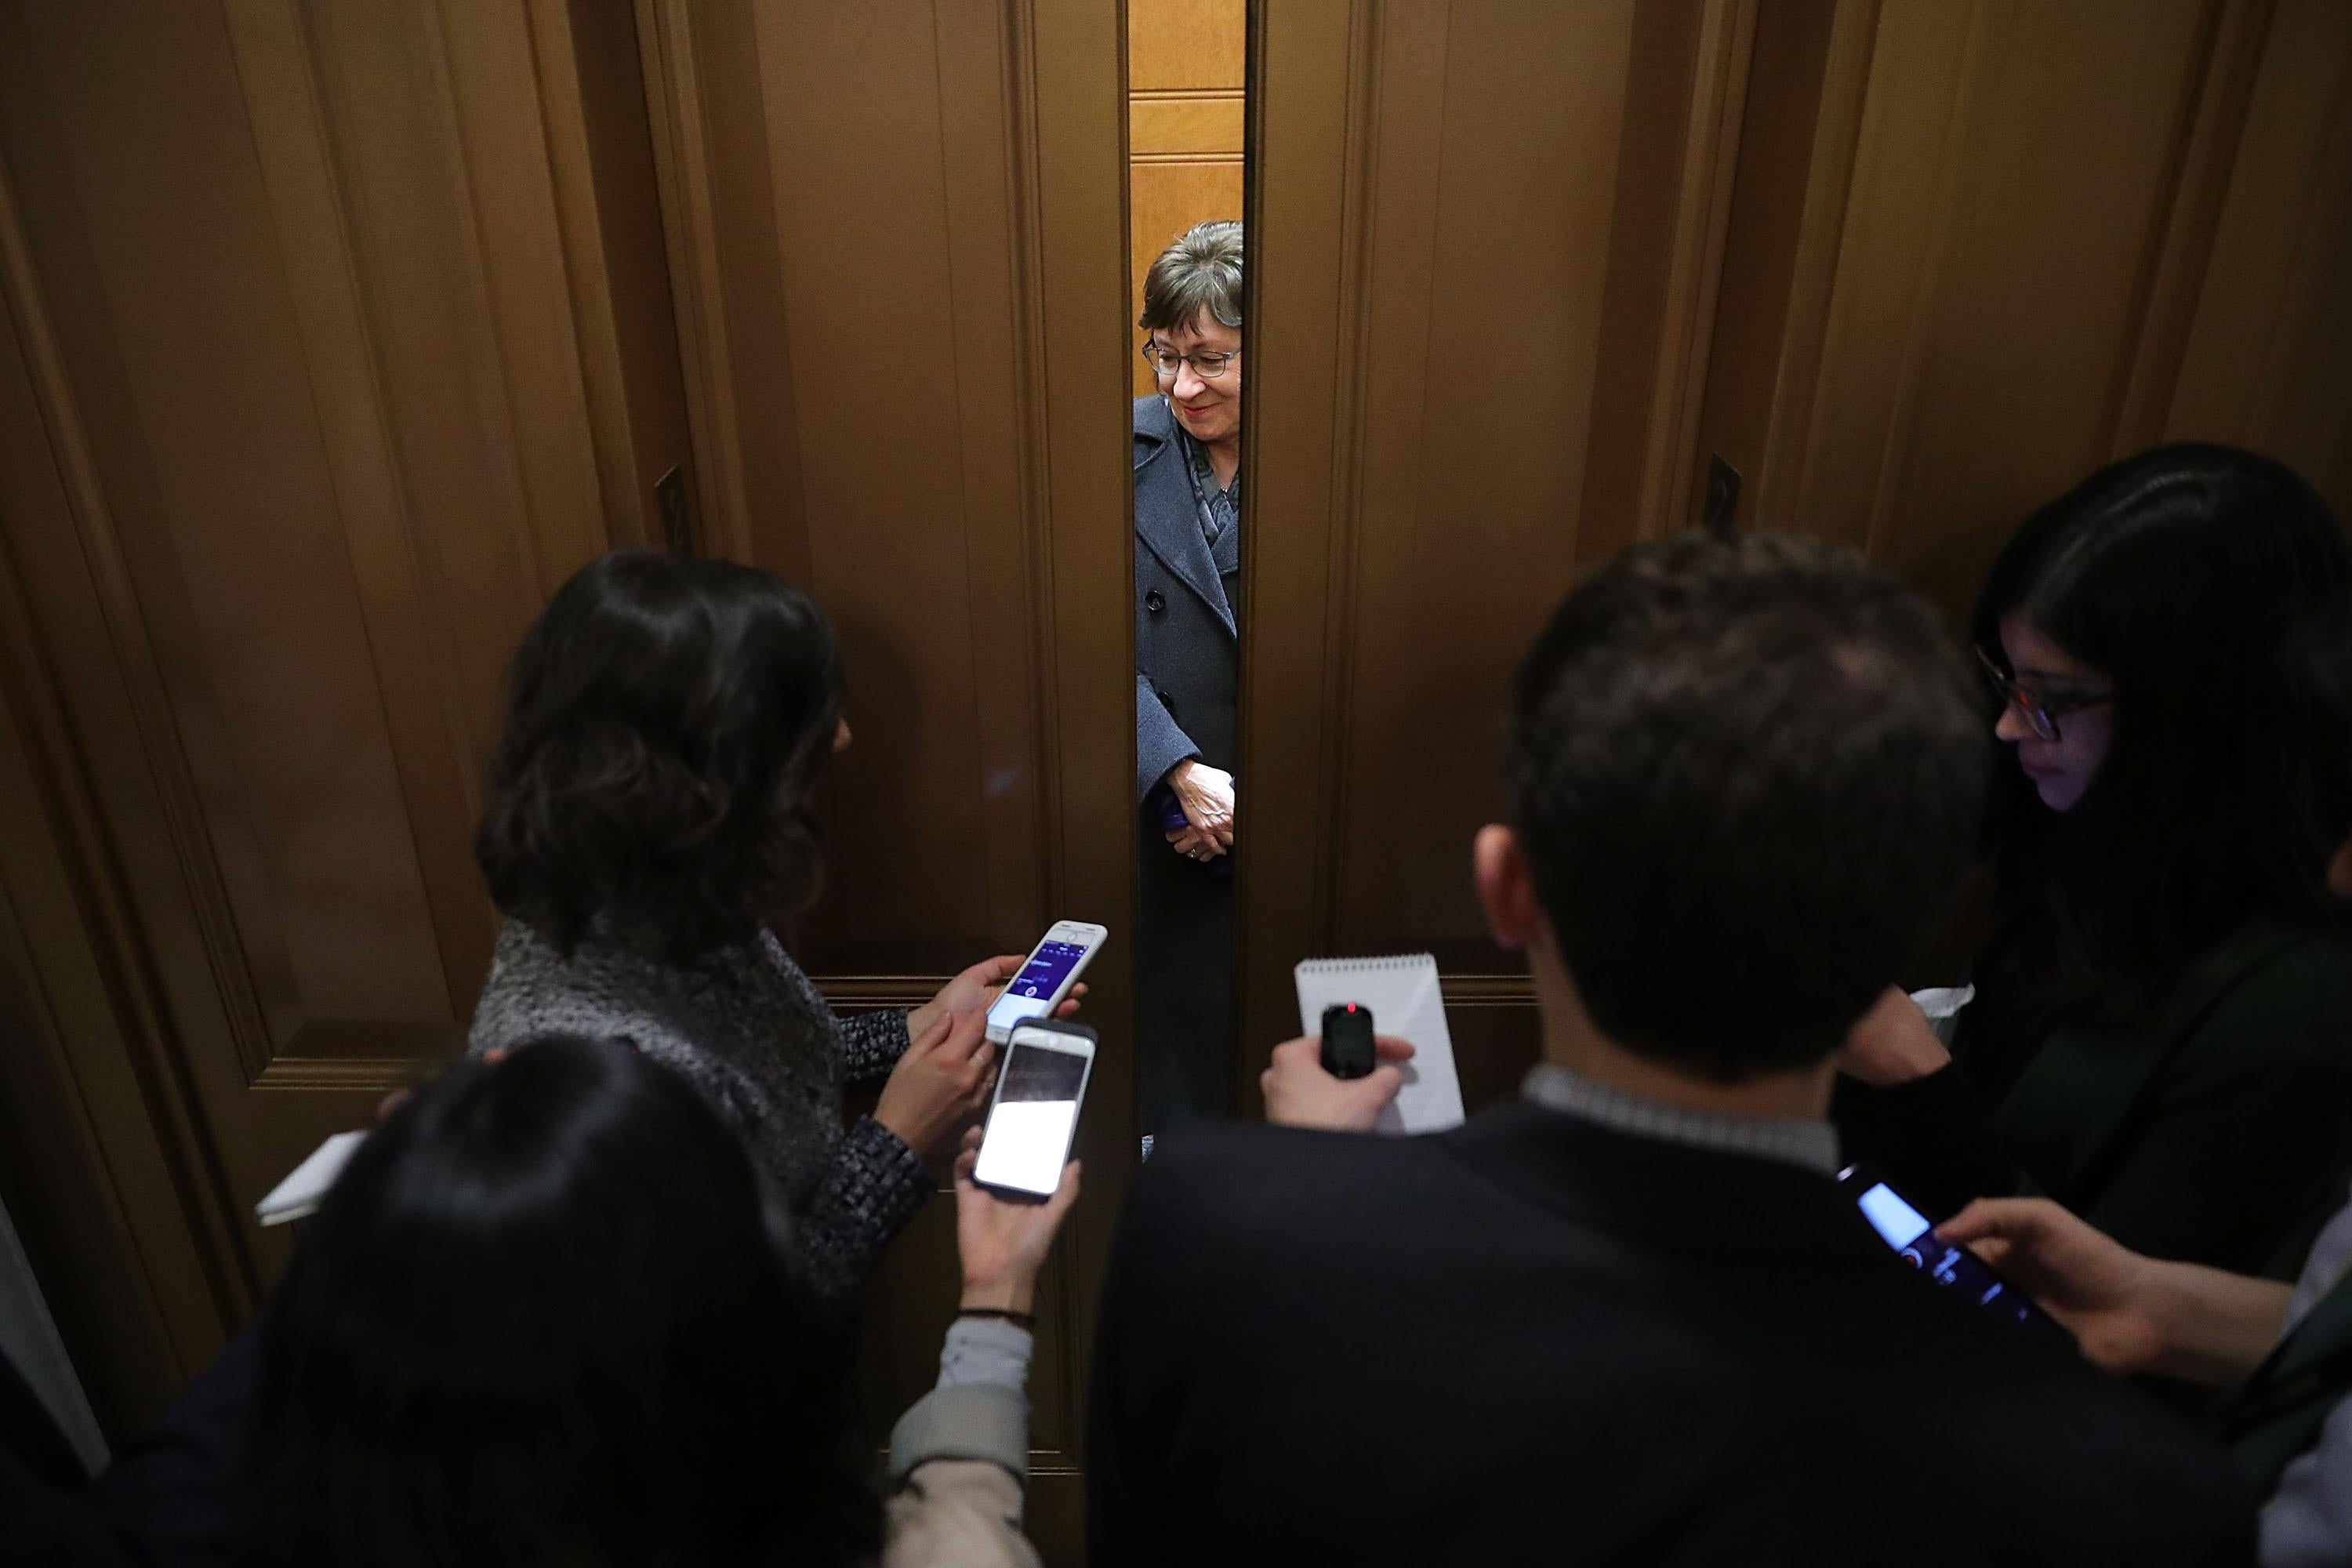 Elevator doors close as Sen. Susan Collins finishes talking to reporters on Capitol Hill.